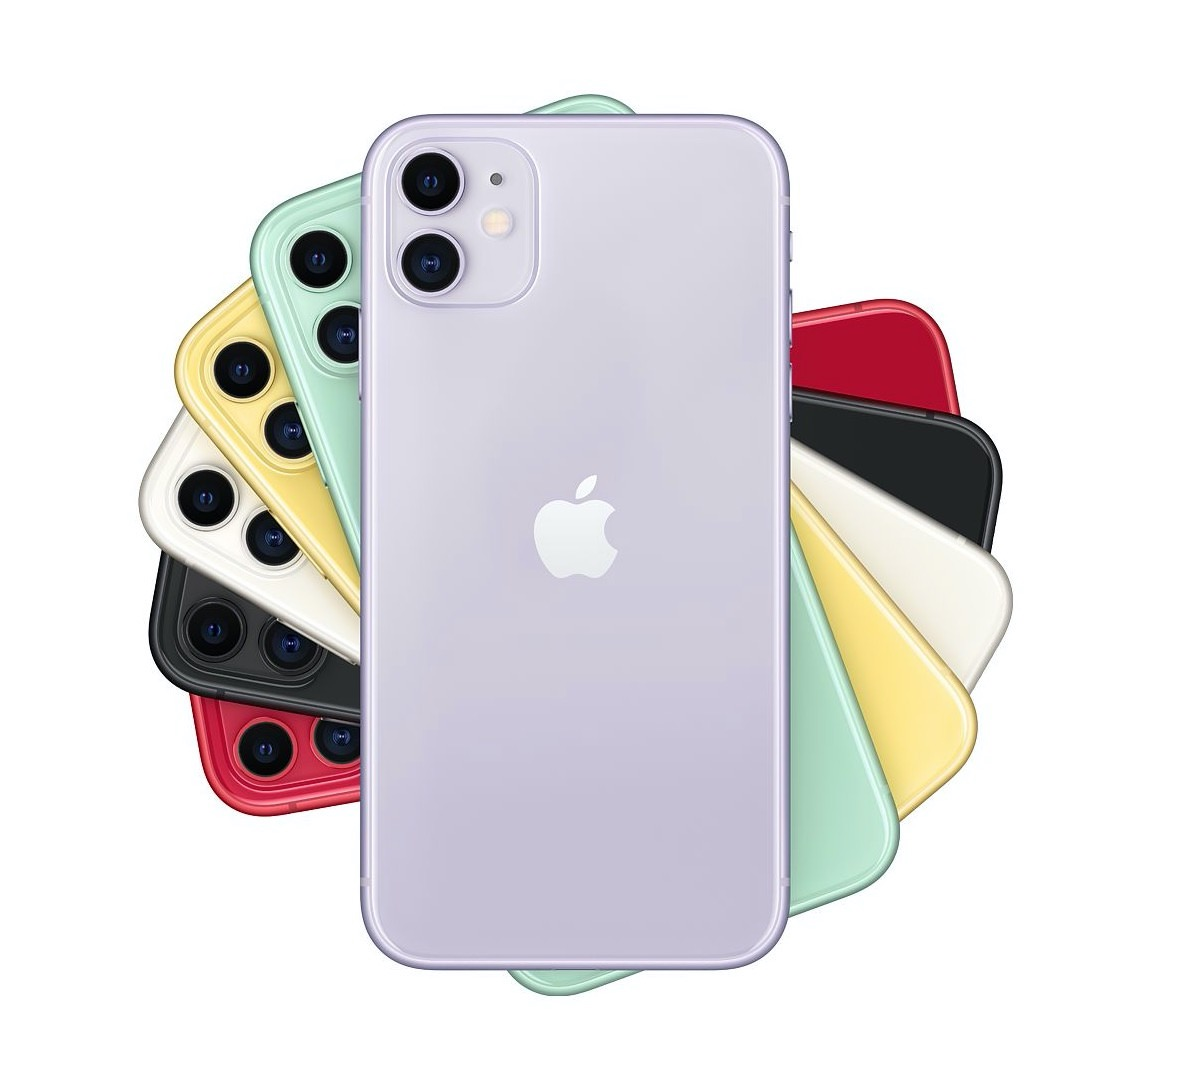 「iPhone 11」「iPhone XR」は1万円値下げし「iPhone 11 Pro」「iPhone 11 Pro Max」は販売終了